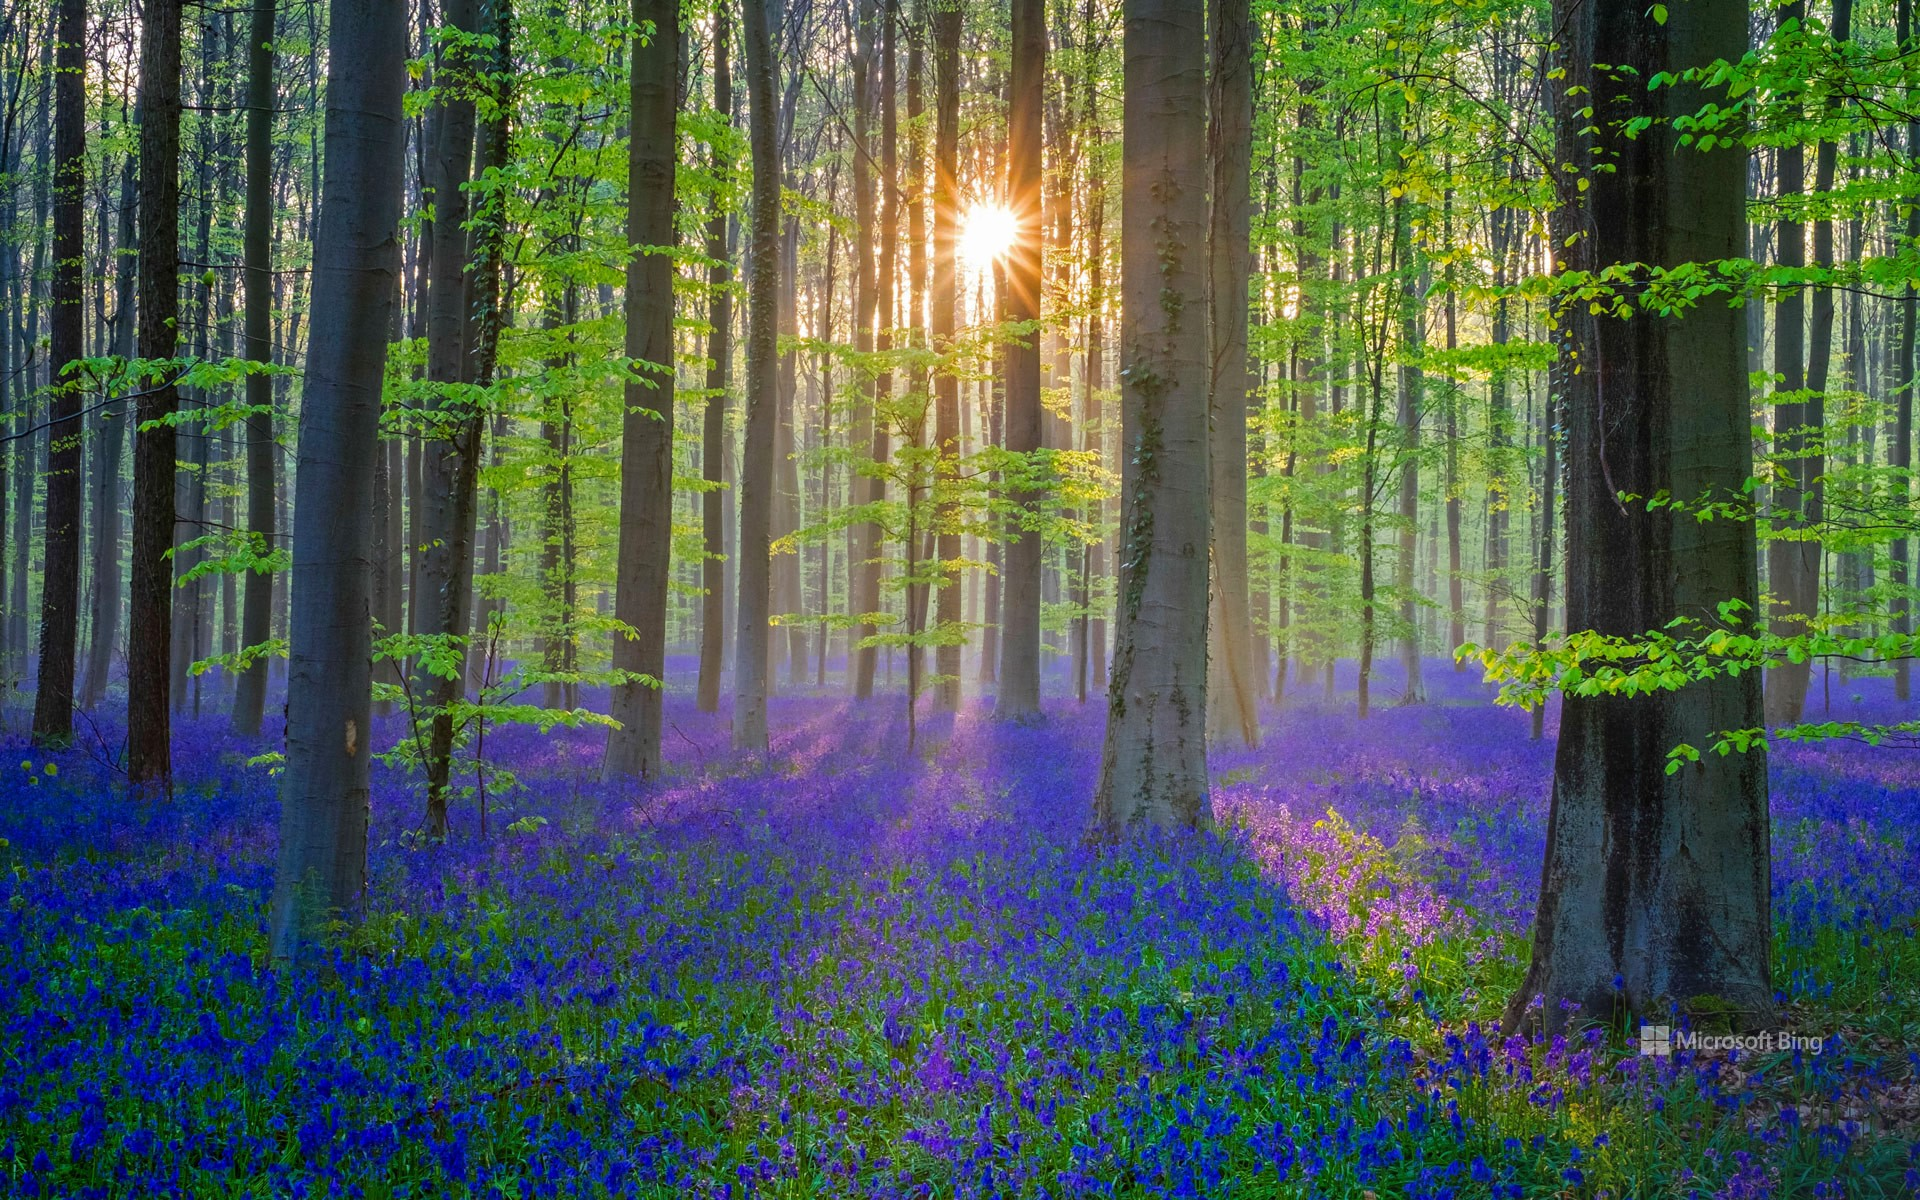 Bluebell flowers carpet the Hallerbos forest floor, Flanders, Belgium